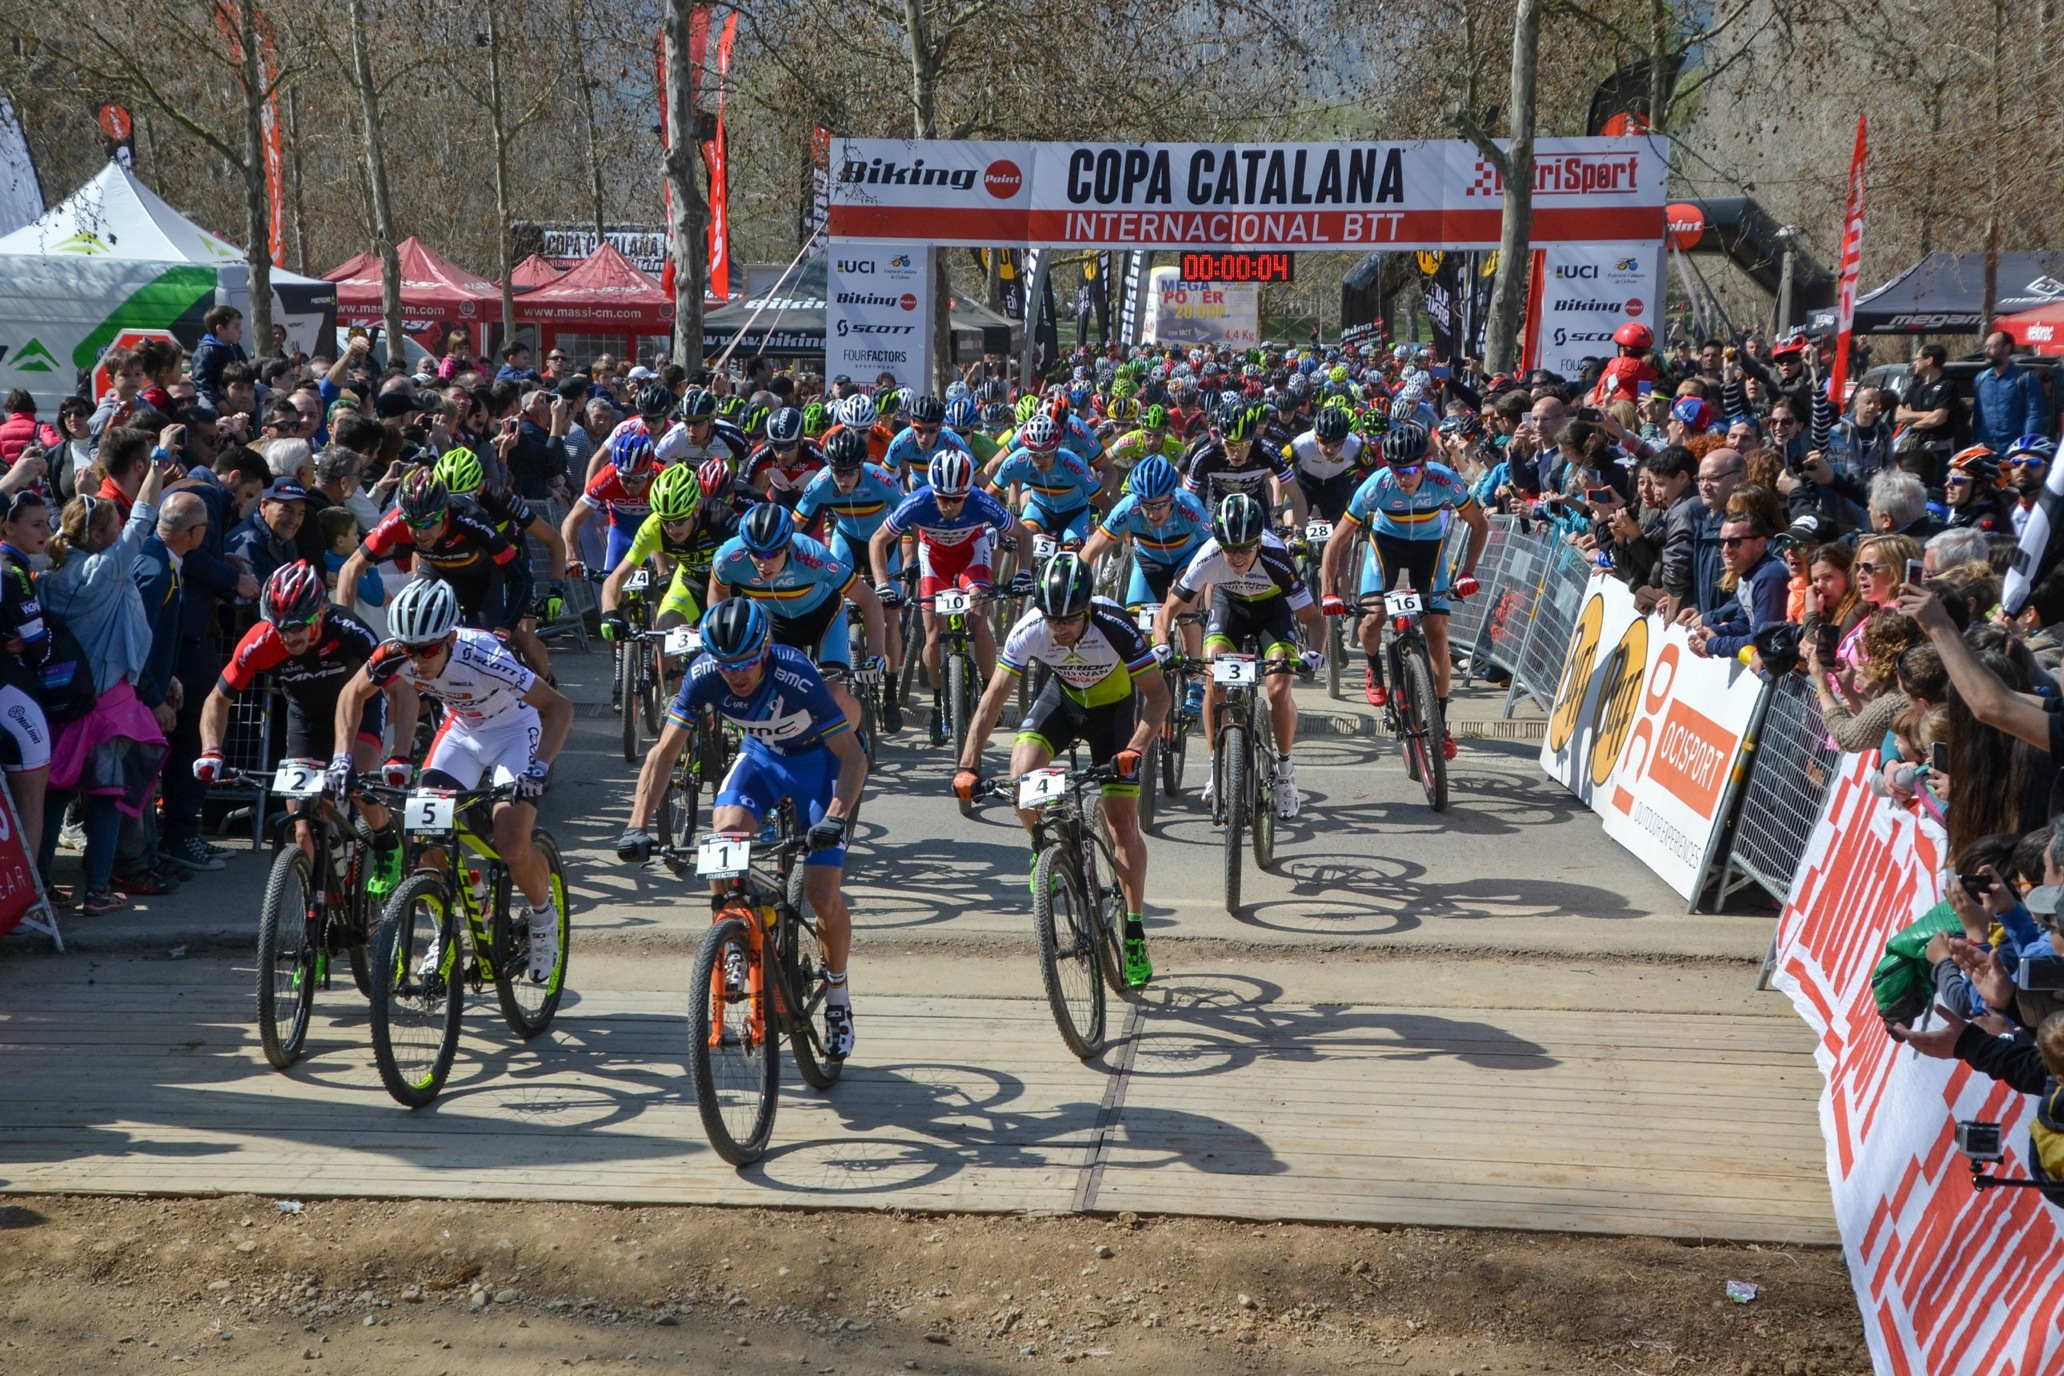 Victor Koretzky i Githa Michiels guanyen una espectacular Copa Catalana Internacional Biking Point de Banyoles